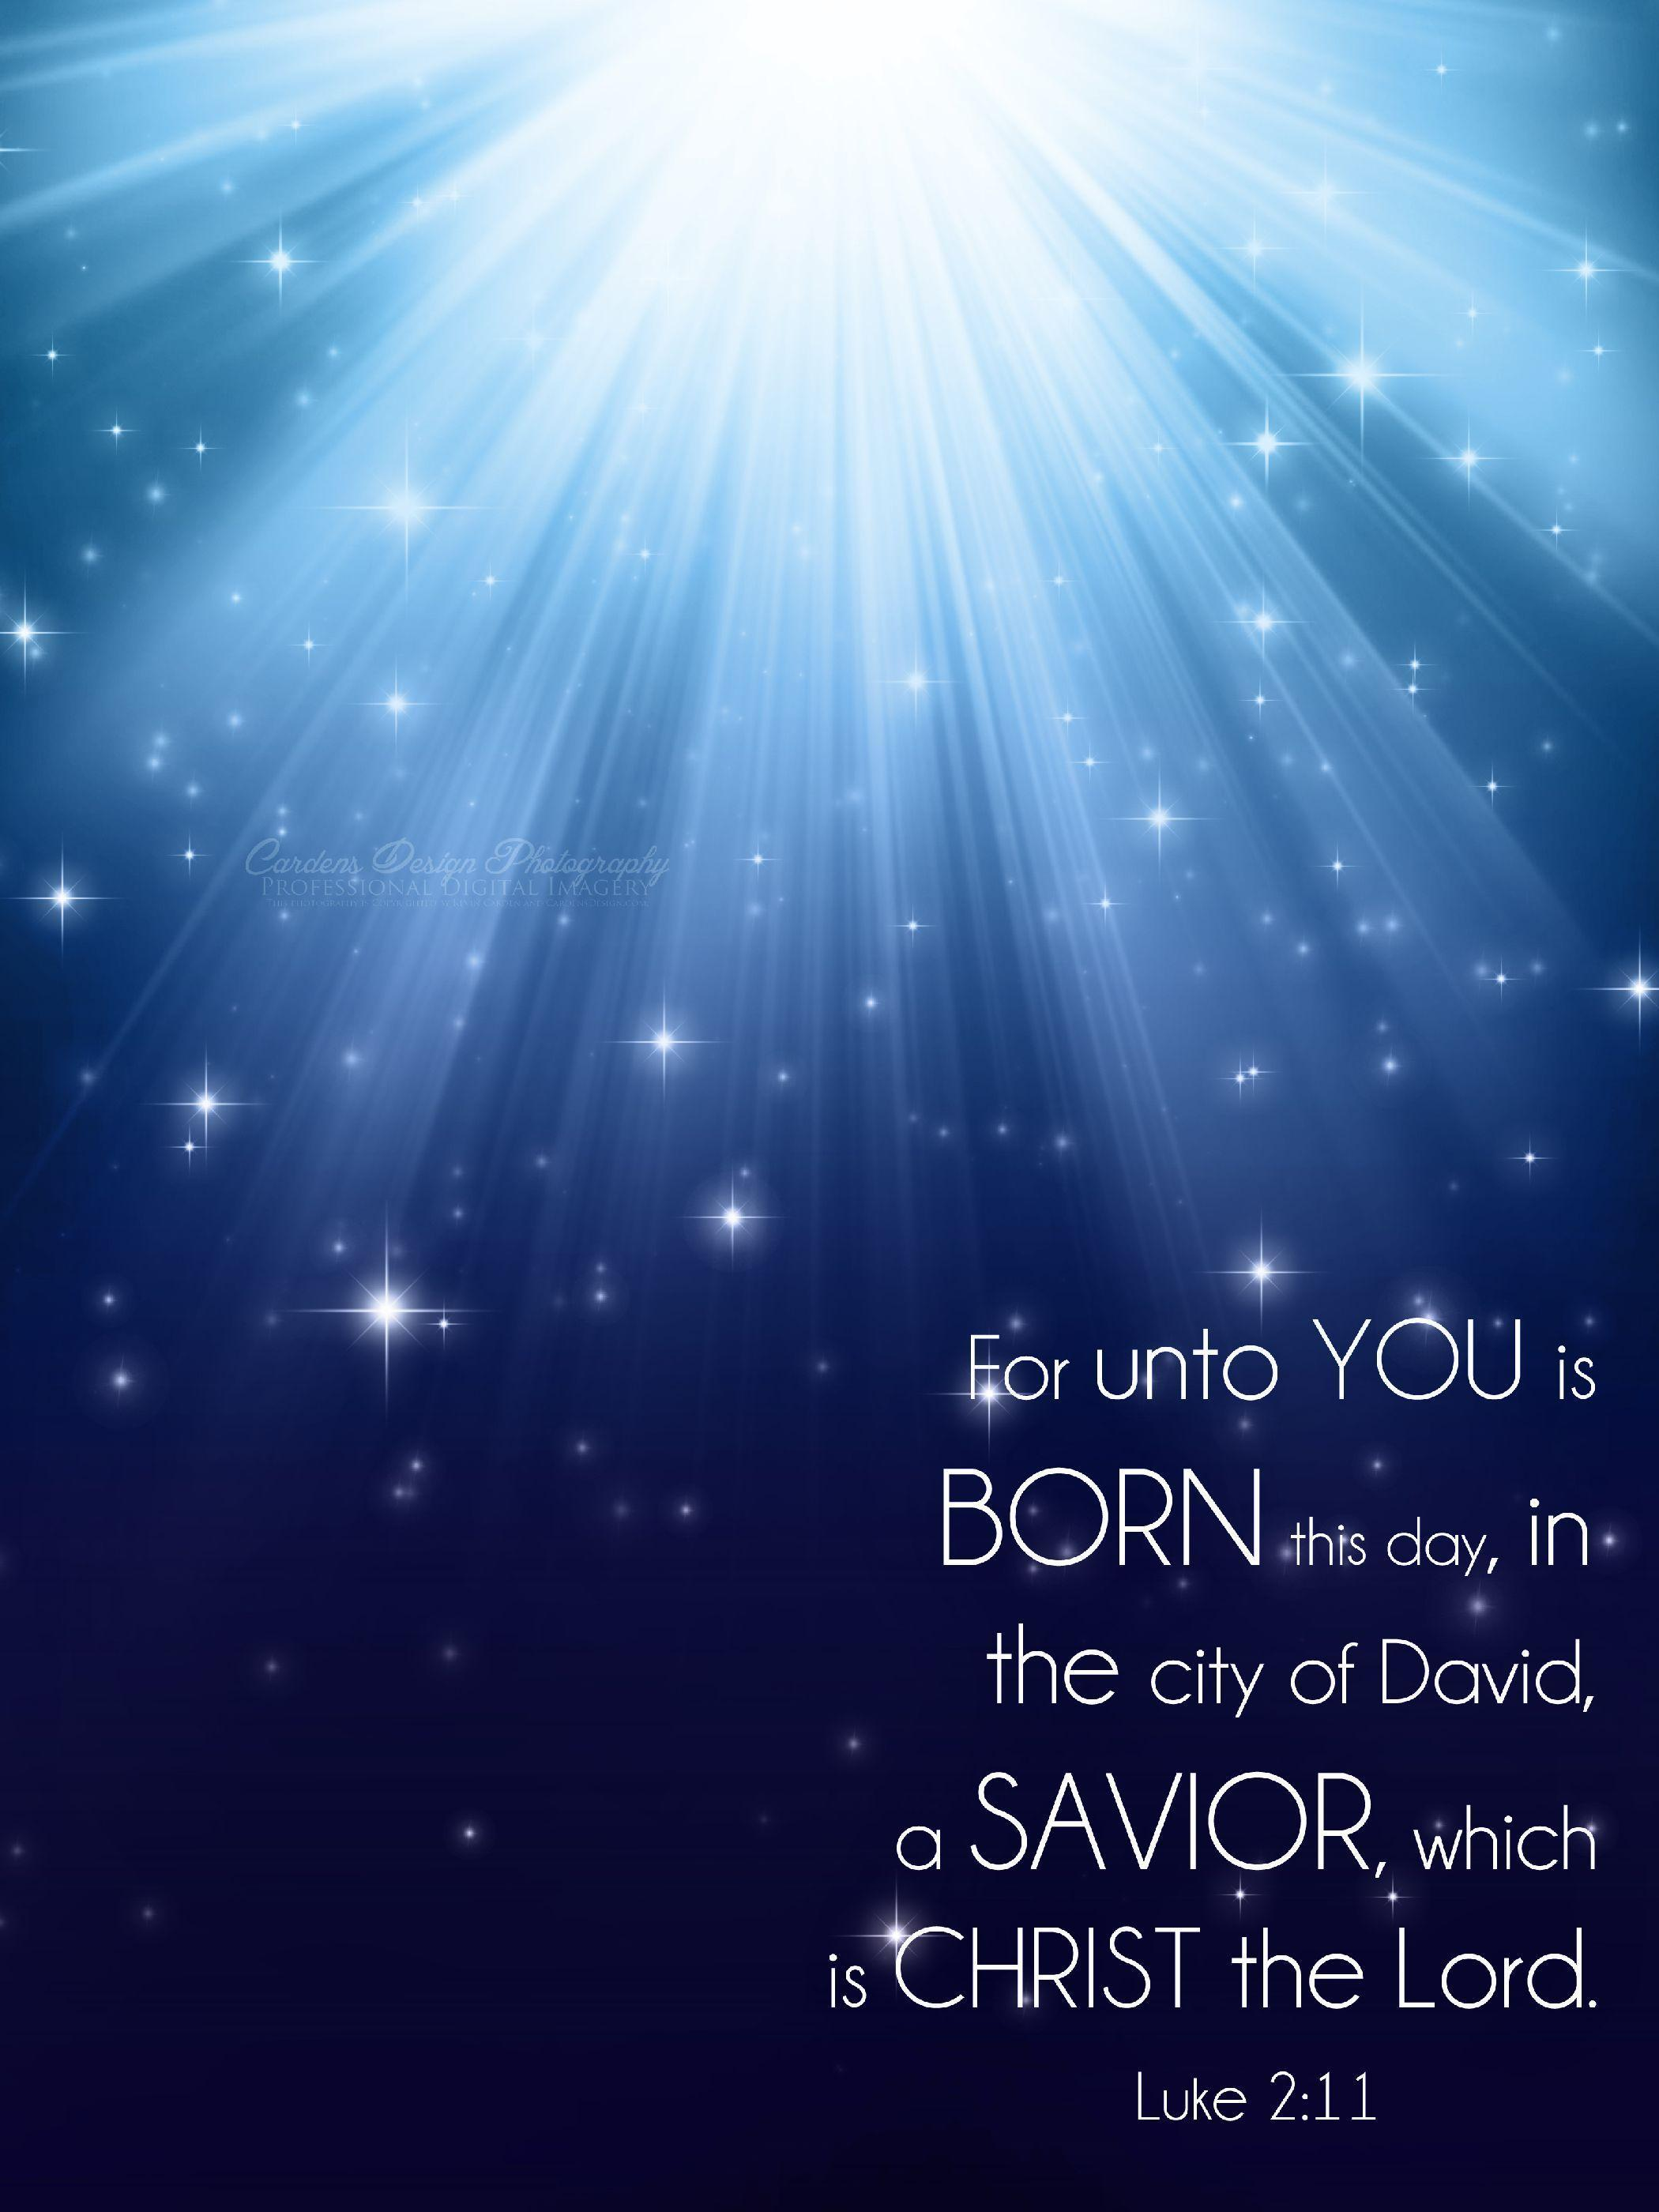 Christian Christmas Wallpapers 2100x2800